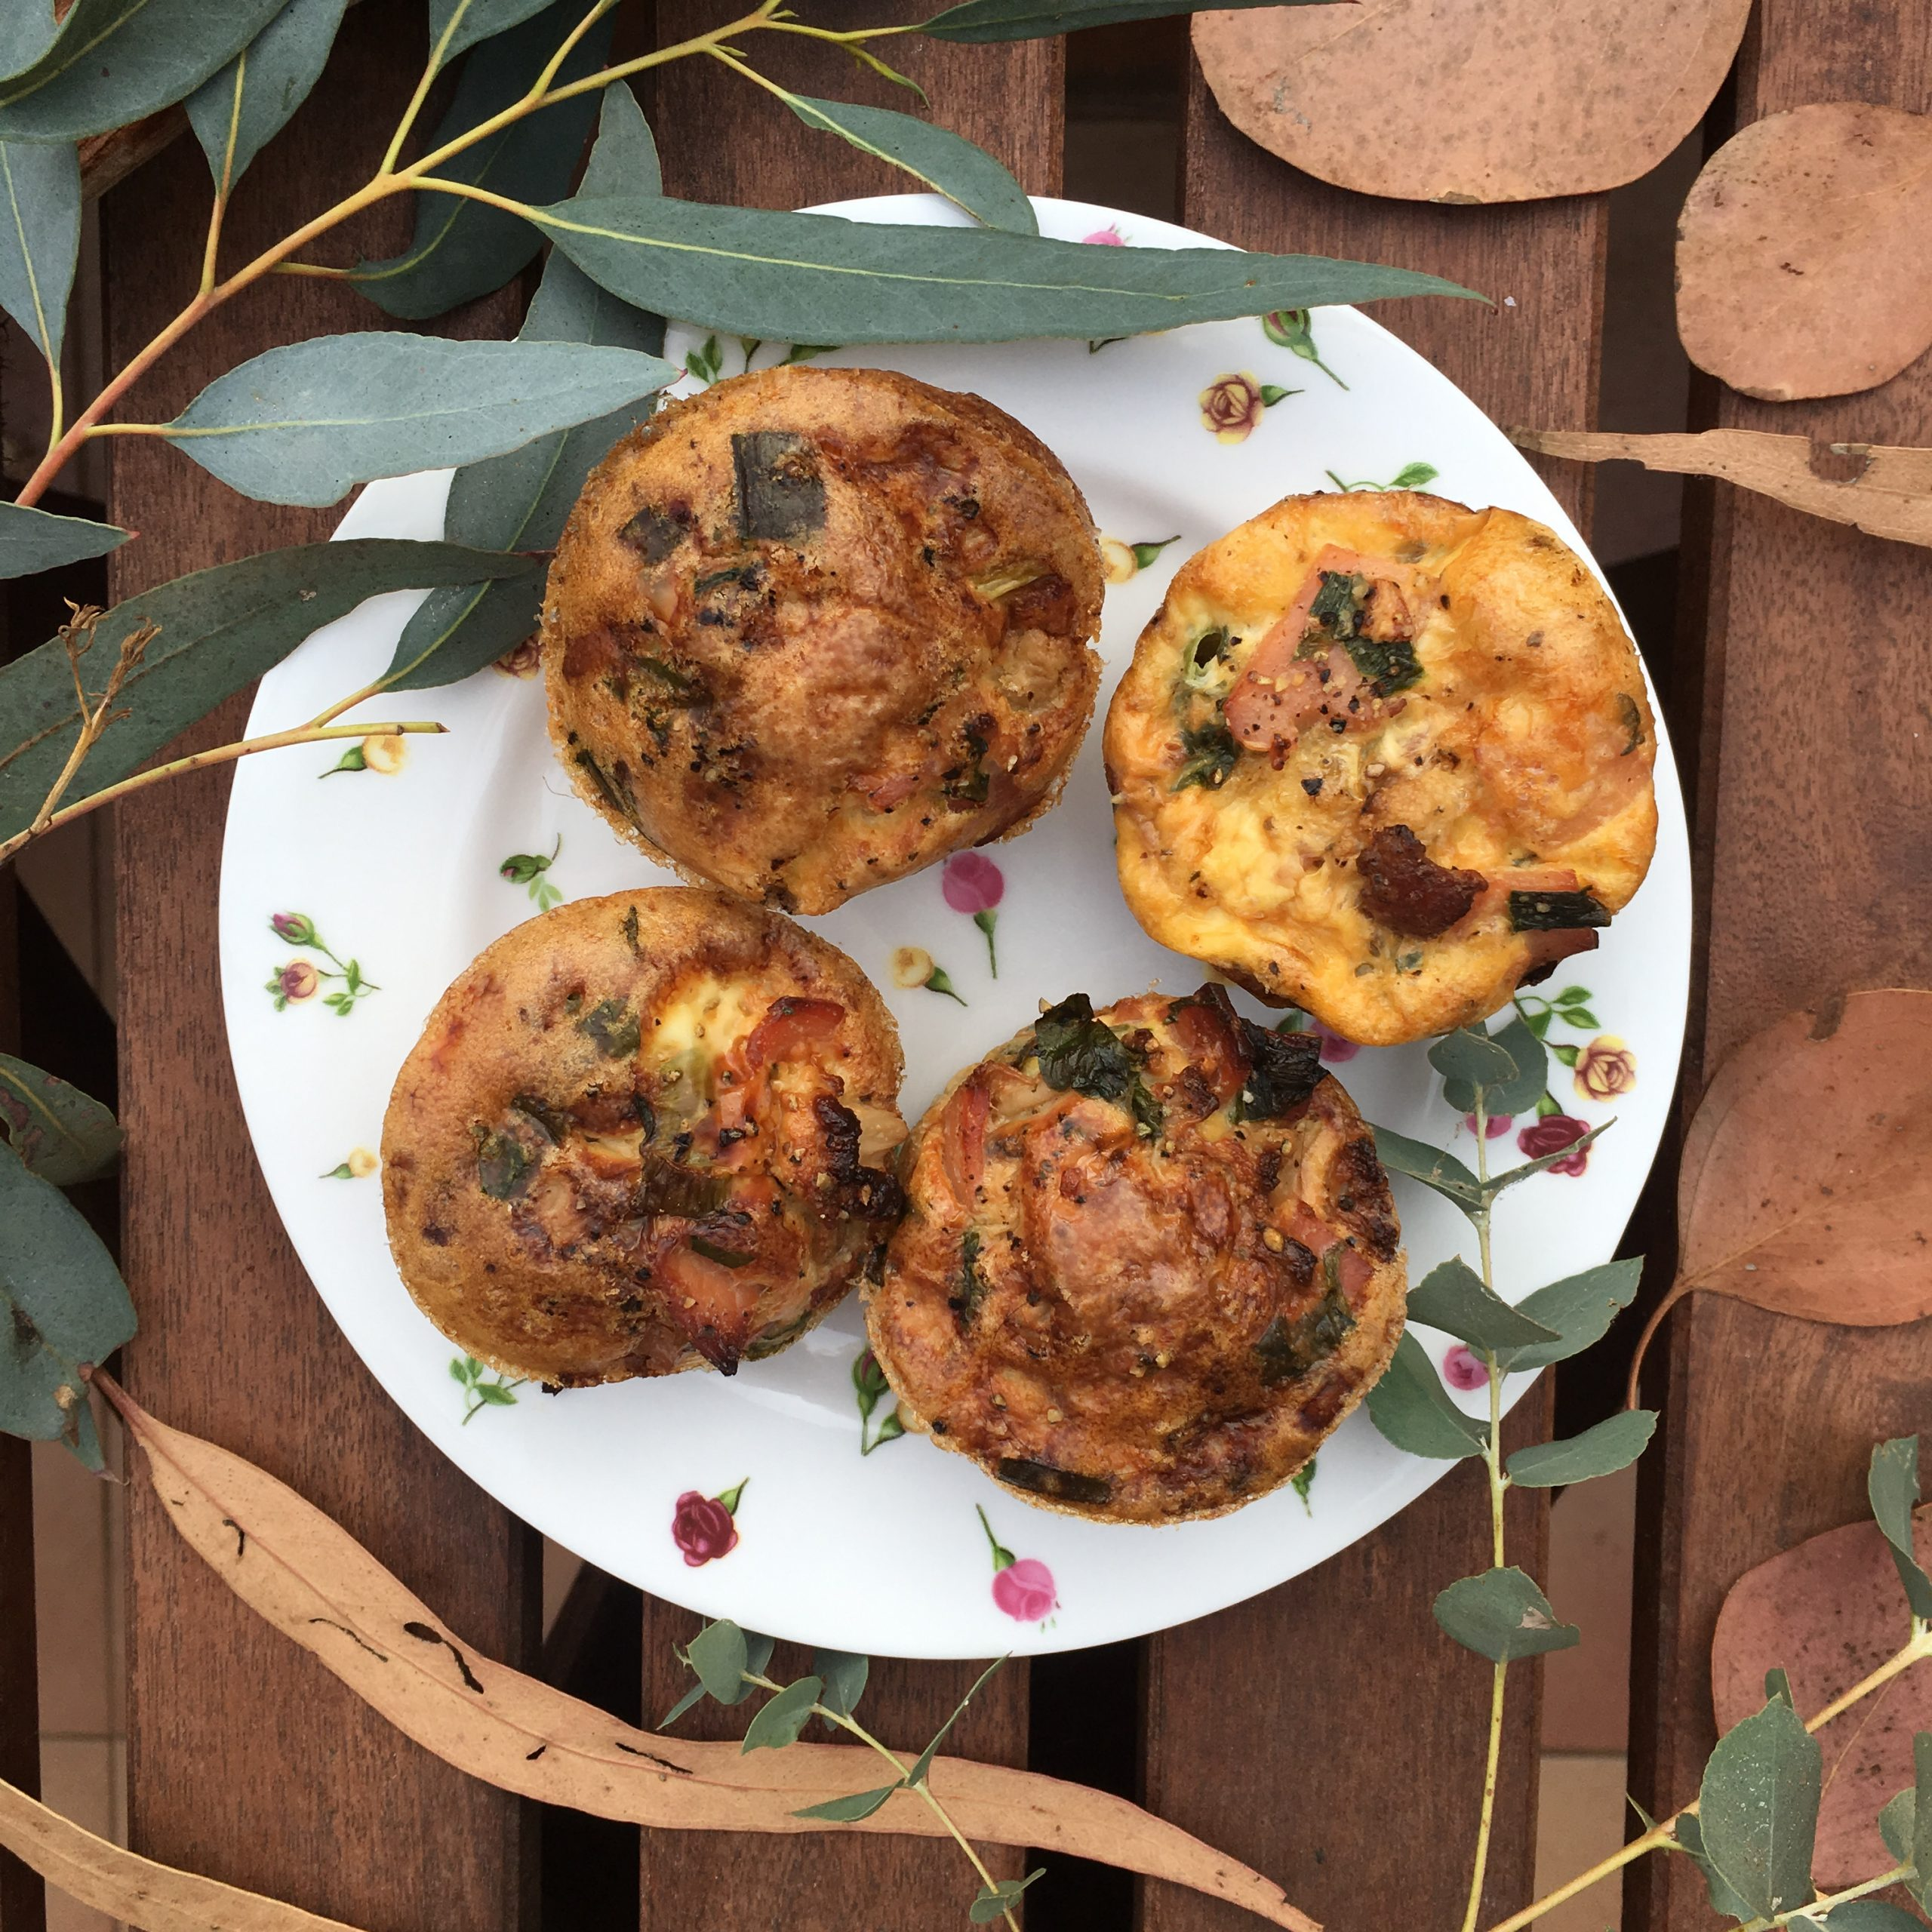 Bacon and Egg Breakfast Muffins with Gum Leaves